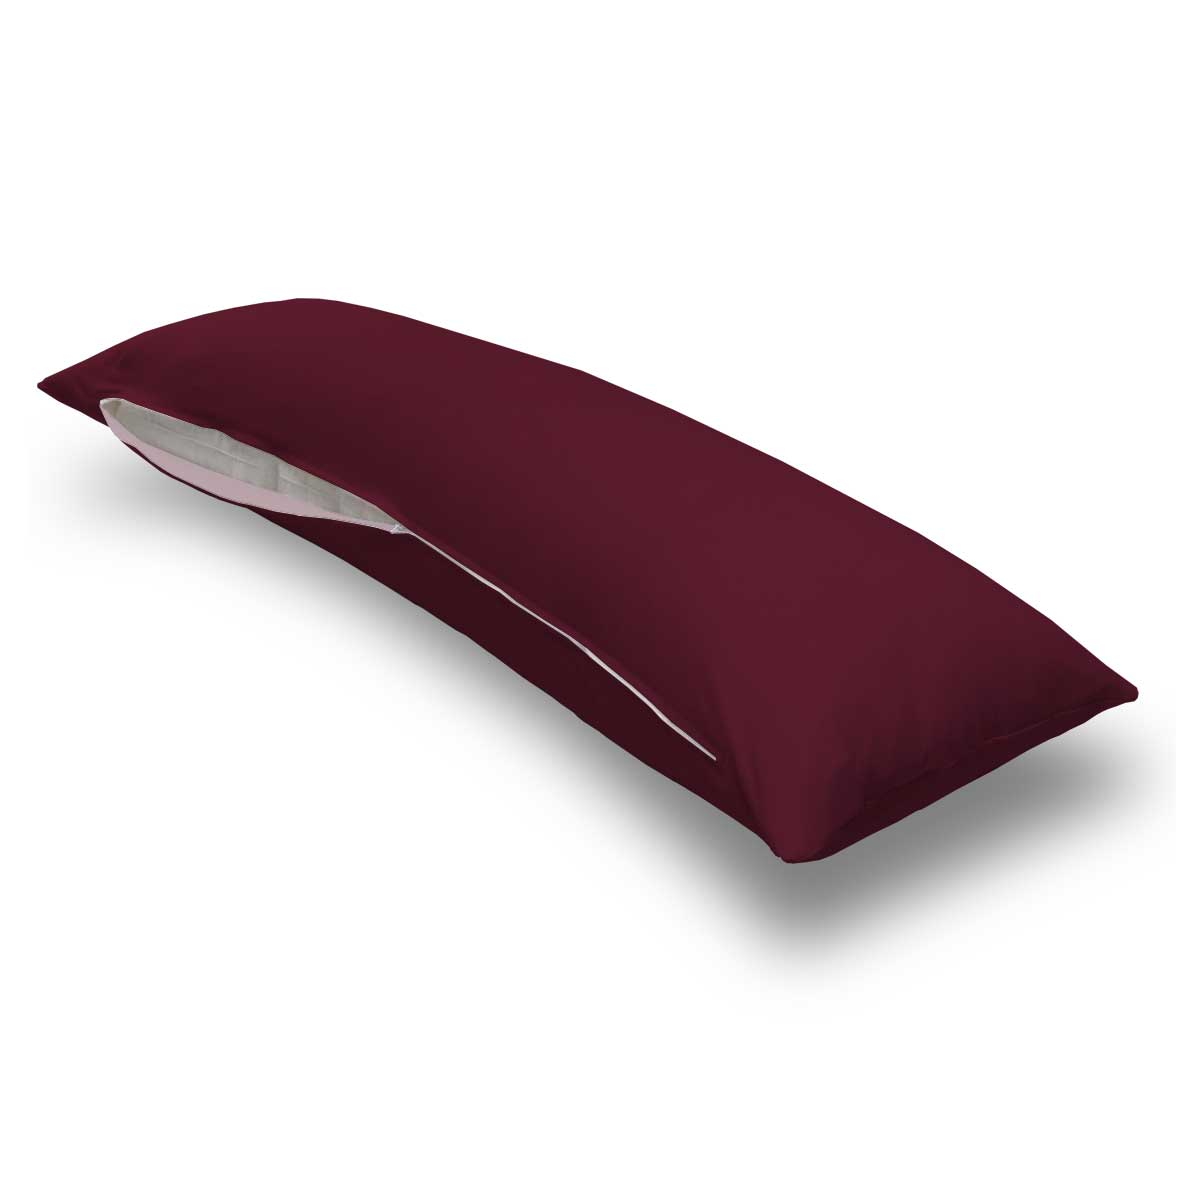 Solid Burgundy Jersey Knit Body Pillow Case